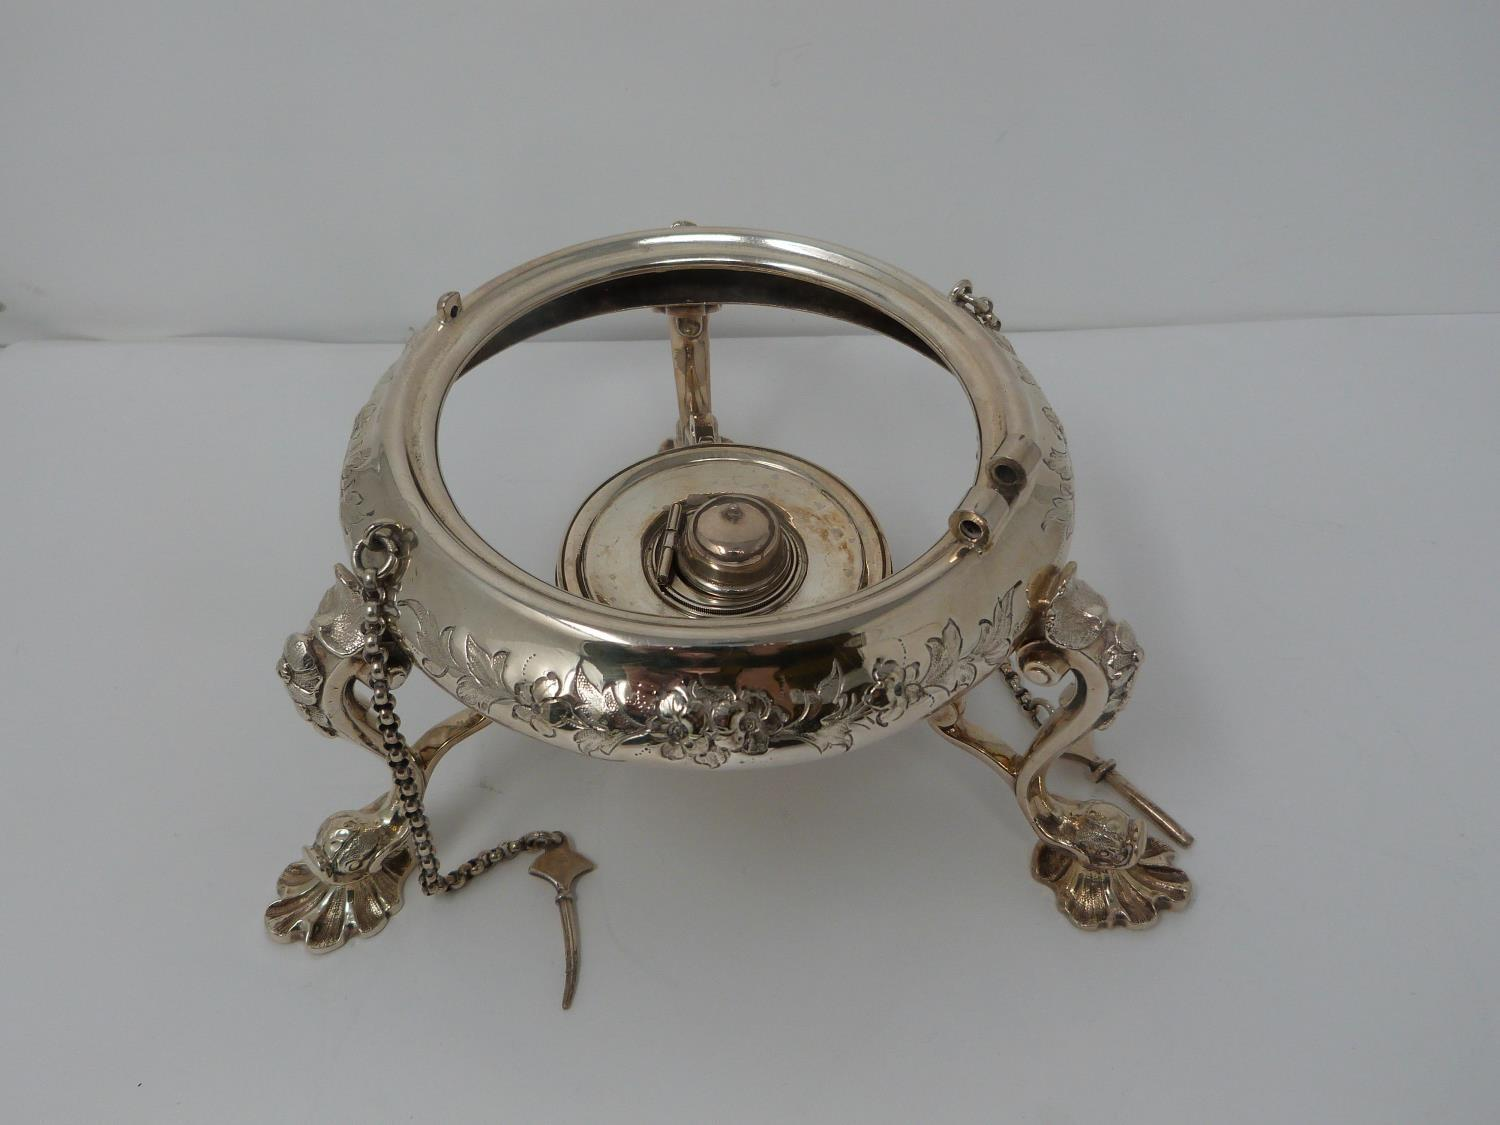 An antique white metal and ivory spirit kettle and stand. The kettle has a flower bud finial and - Image 12 of 17